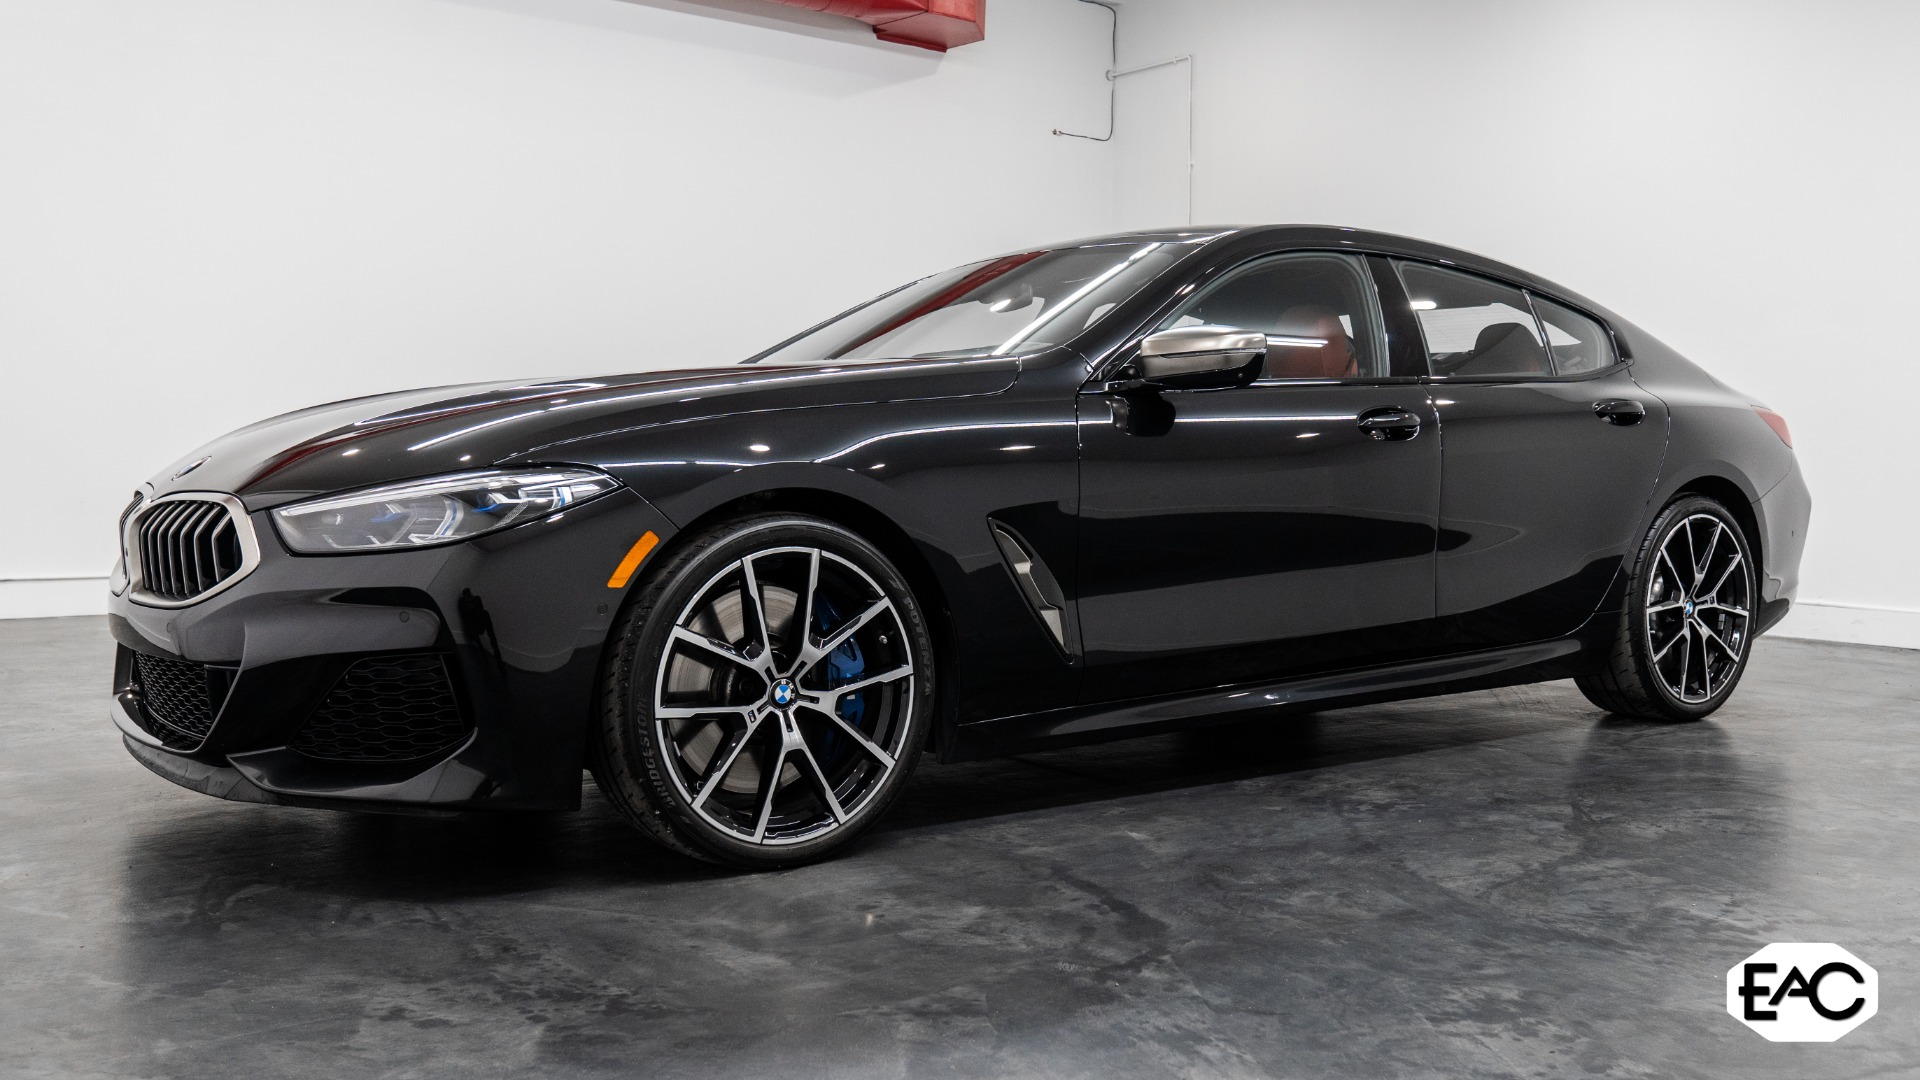 Used 2020 BMW 8 Series M850i xDrive Gran Coupe for sale $93,990 at Empire Auto Collection in Warren MI 48091 1